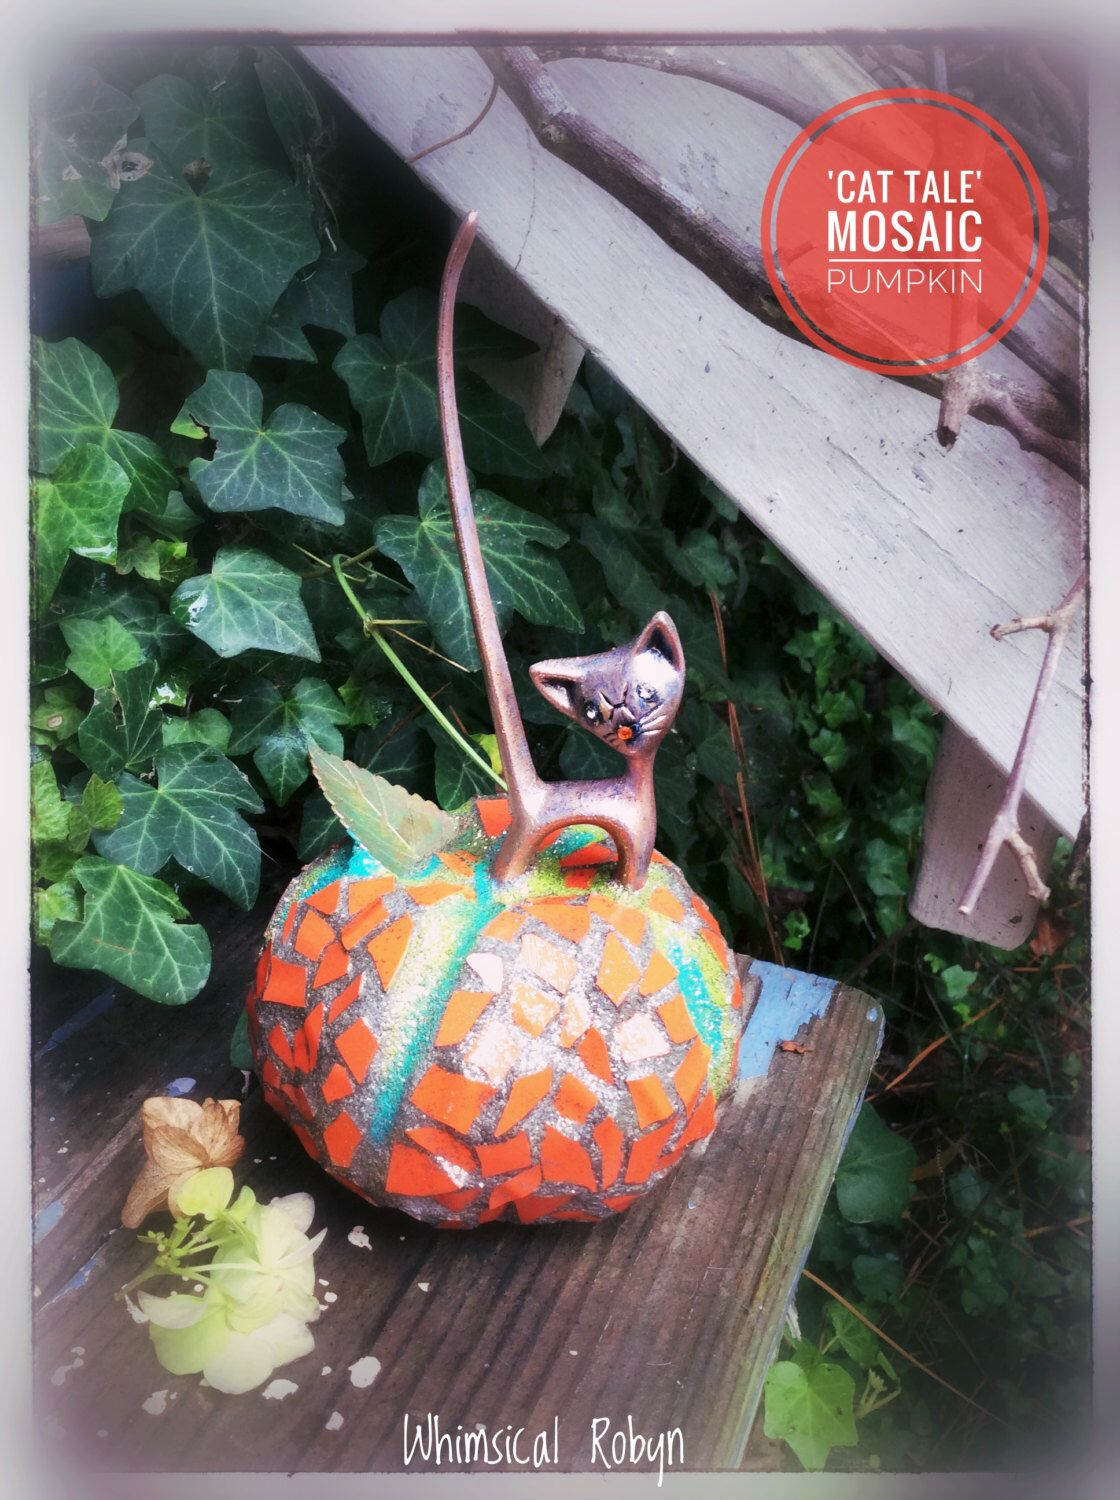 Mosaic pumpkin,Halloween decor, fall pumpkin,Kitty on pumpkin,Cat - Whimsical Halloween Decorations